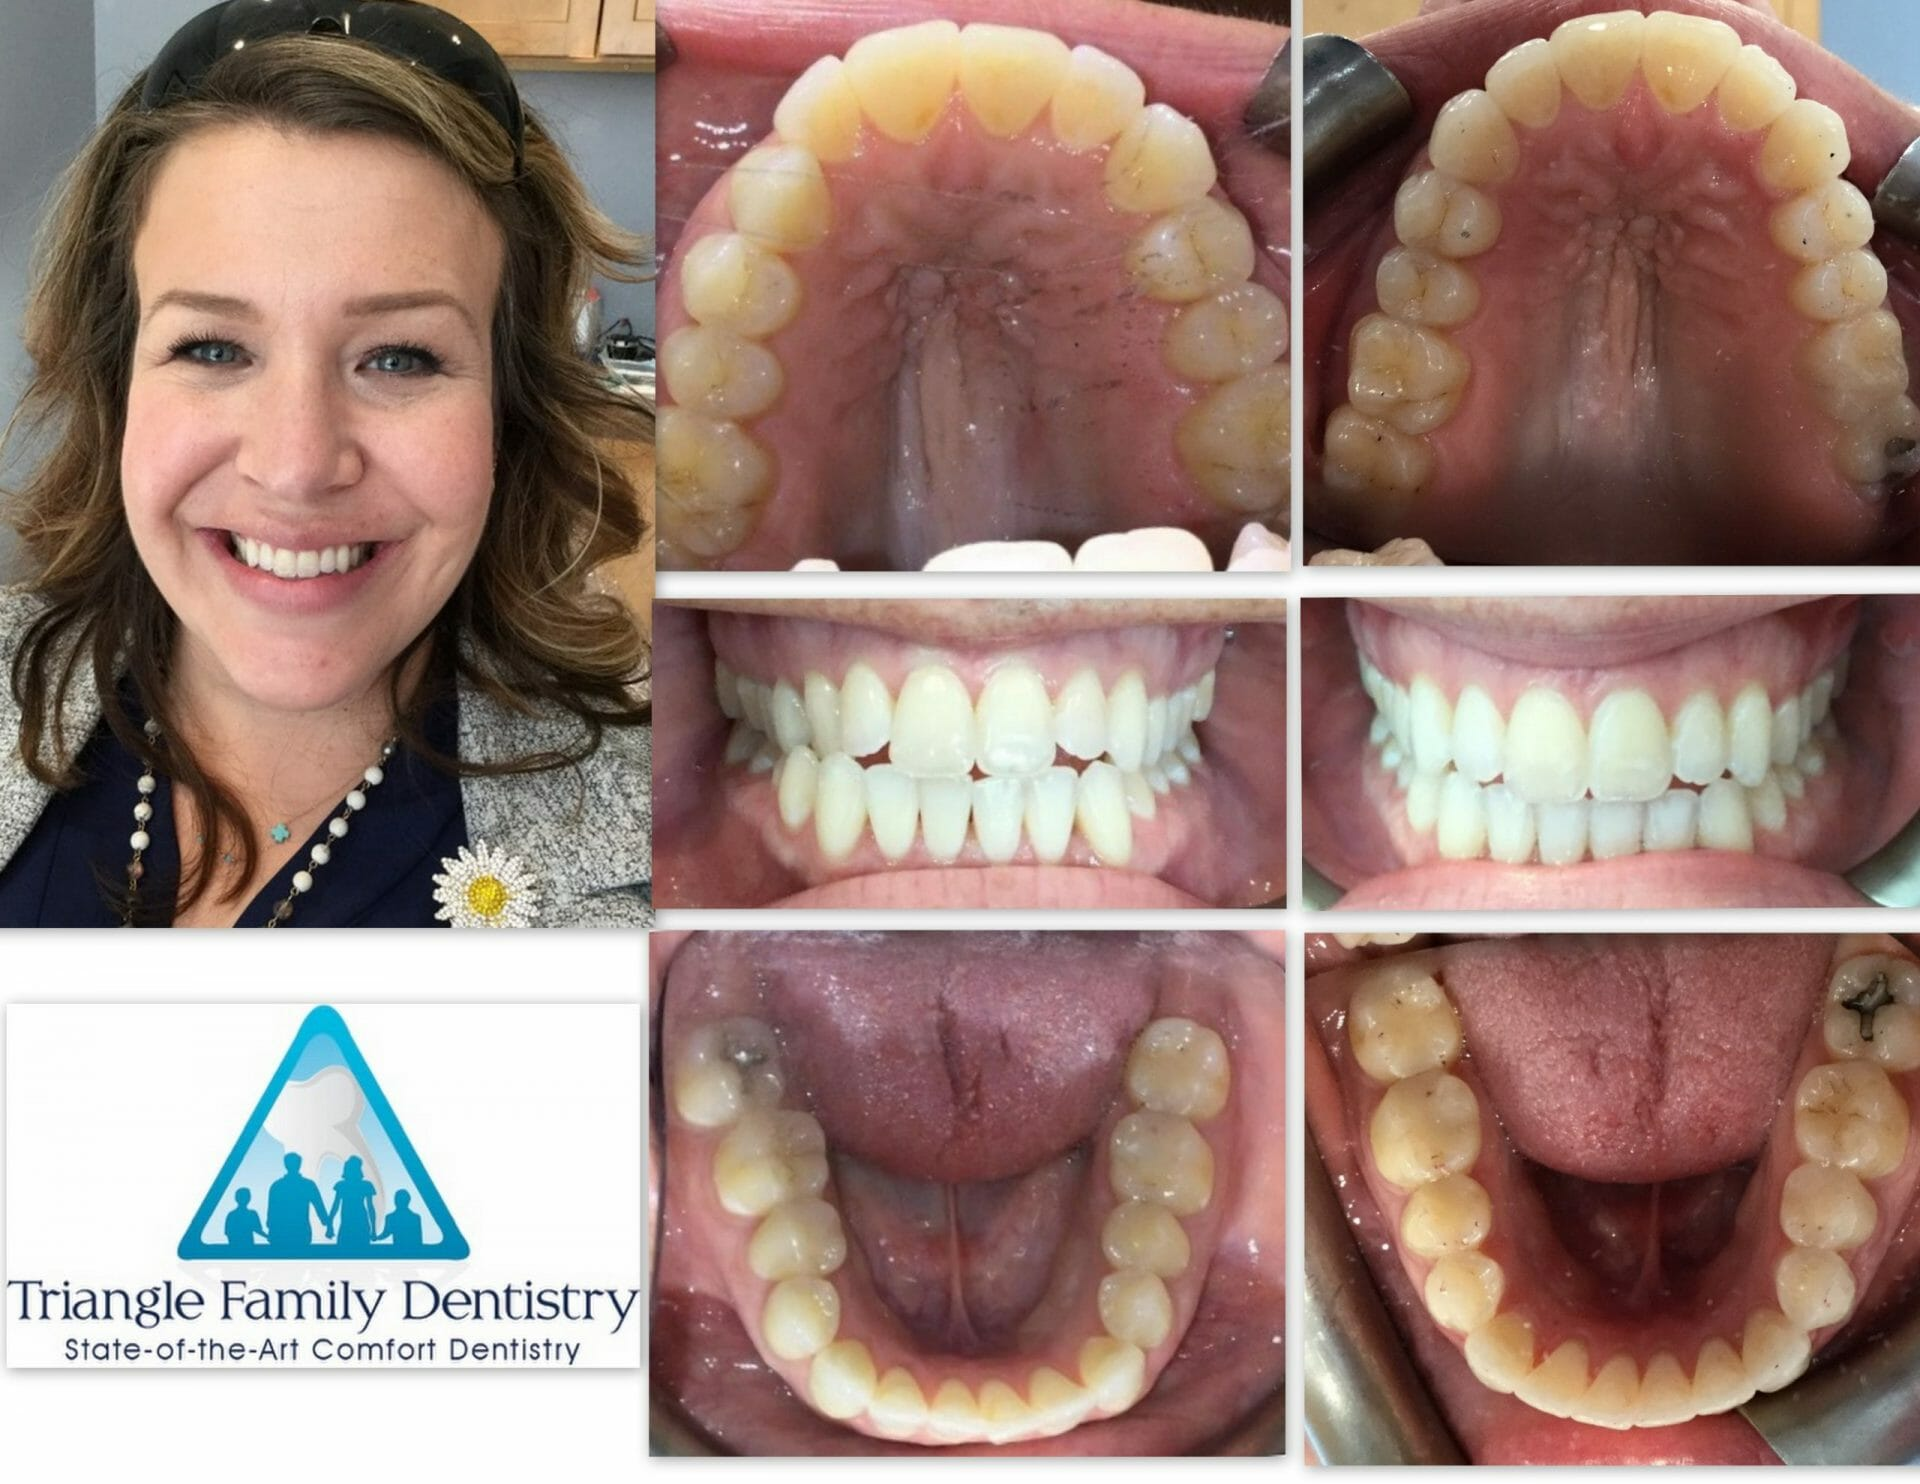 a-m-invisalign-dental-office-cosmetic-dentist-triangle-family-dentistry-scaled